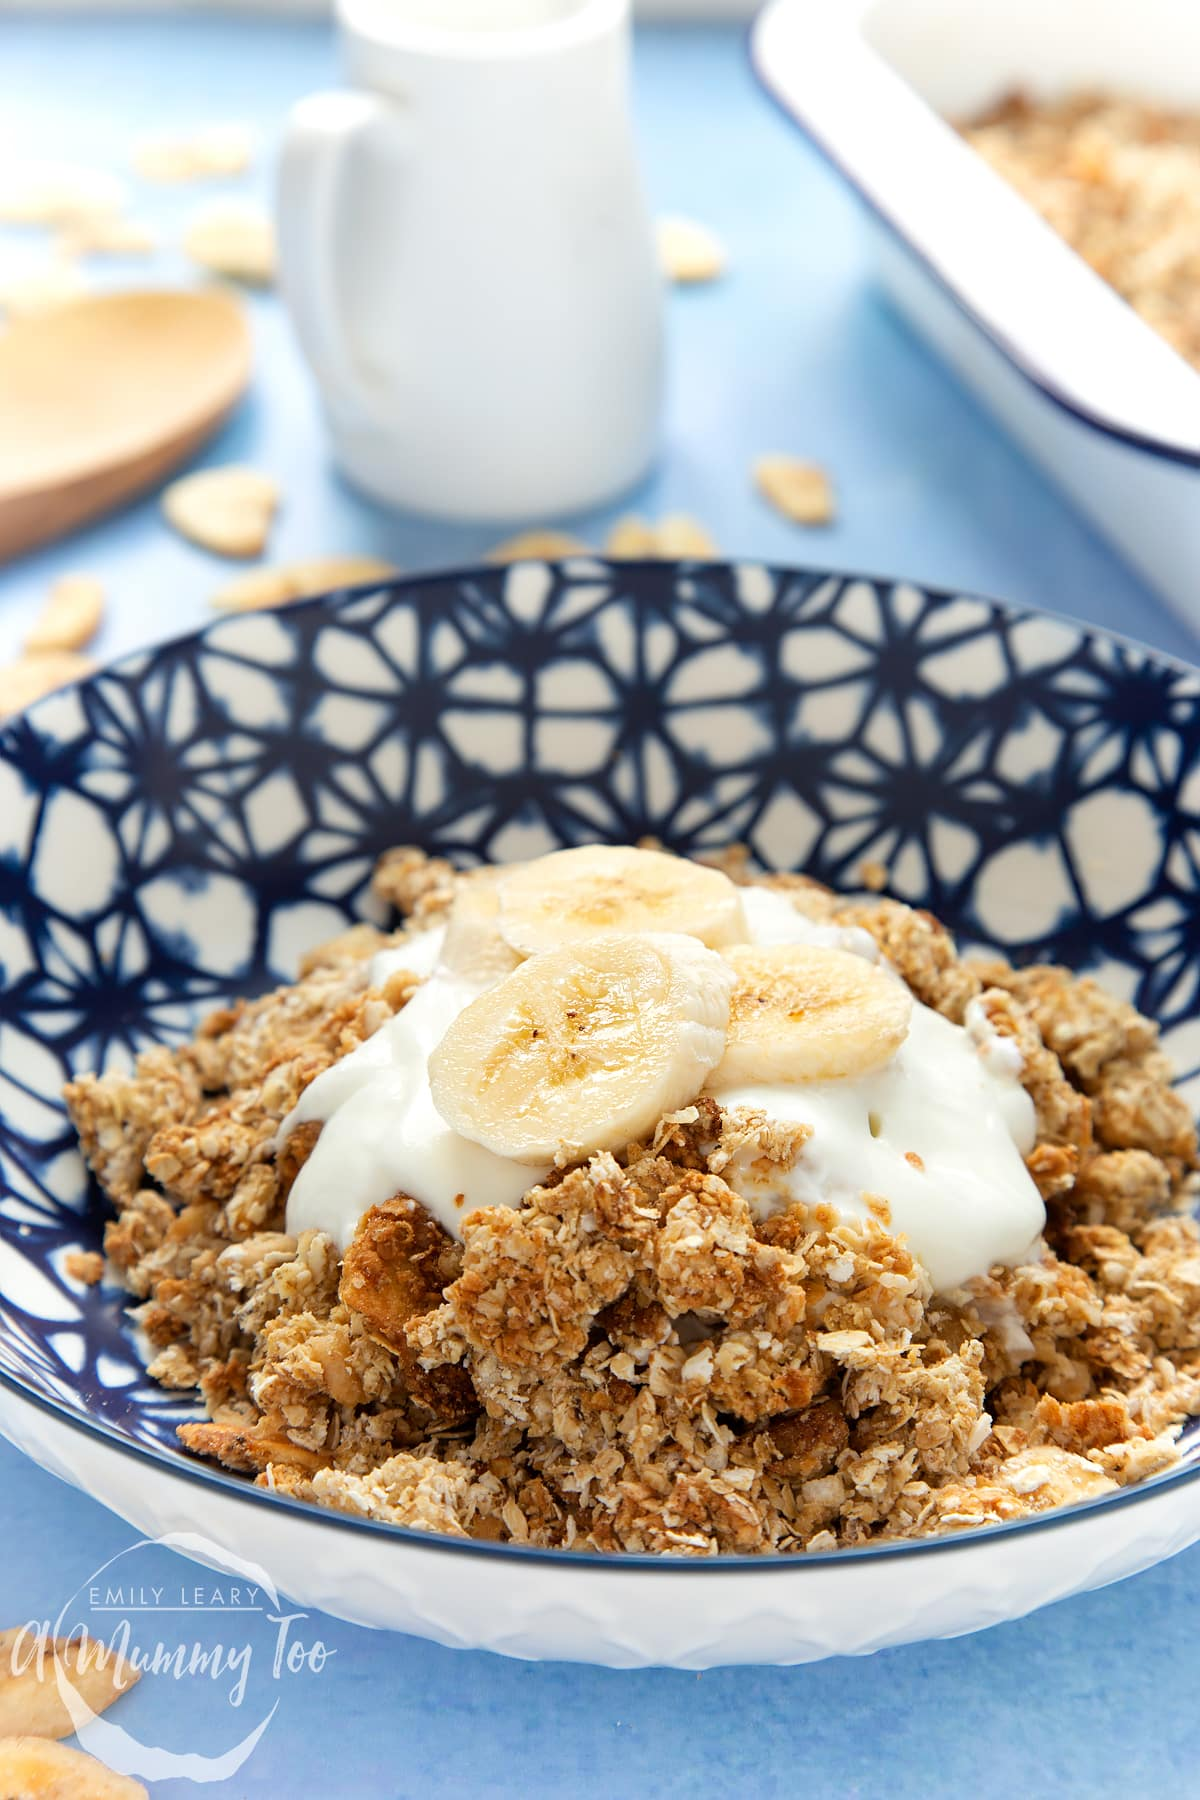 Banana coconut granola served in a blue and white bowl, topped with yogurt and banana. A jug of milk is shown in the background.